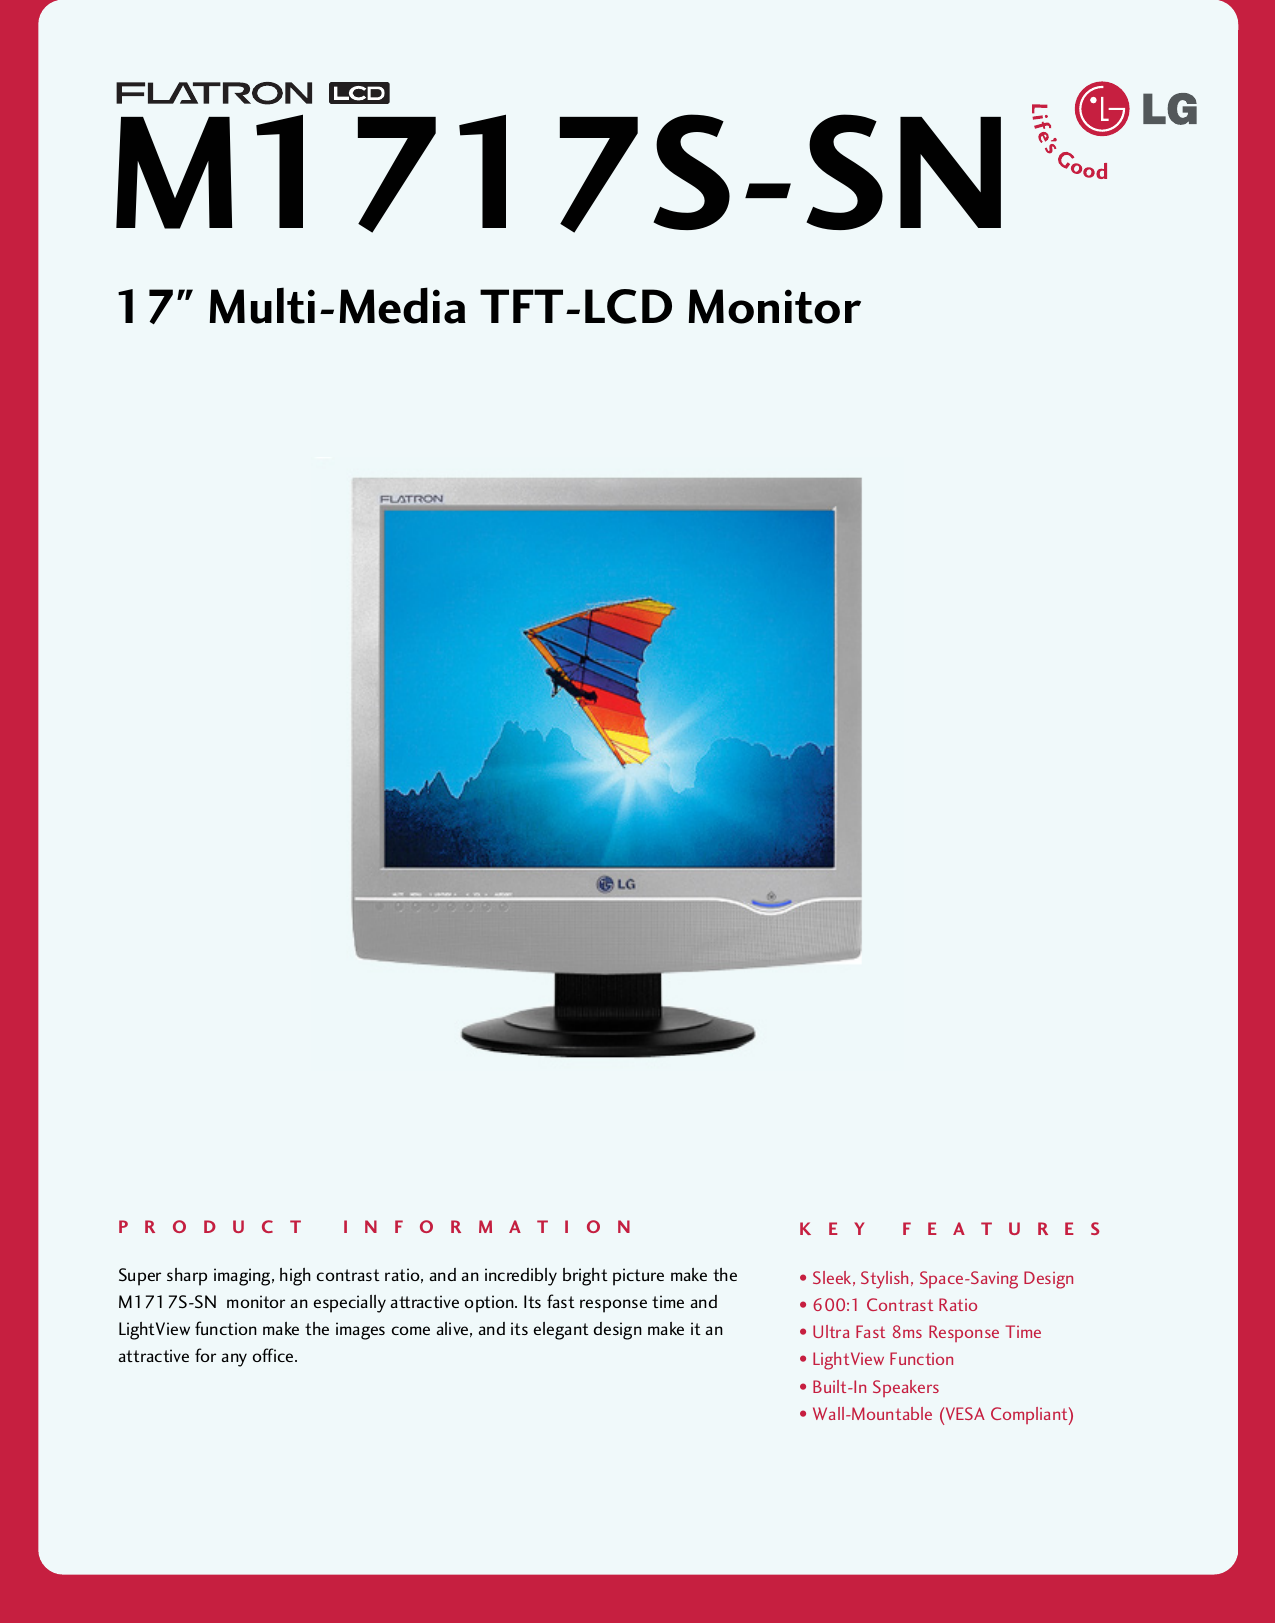 lg flatron m1717s sn users manual rh usermanual wiki lg flatron l225ws user manual lg flatron w2353v user manual